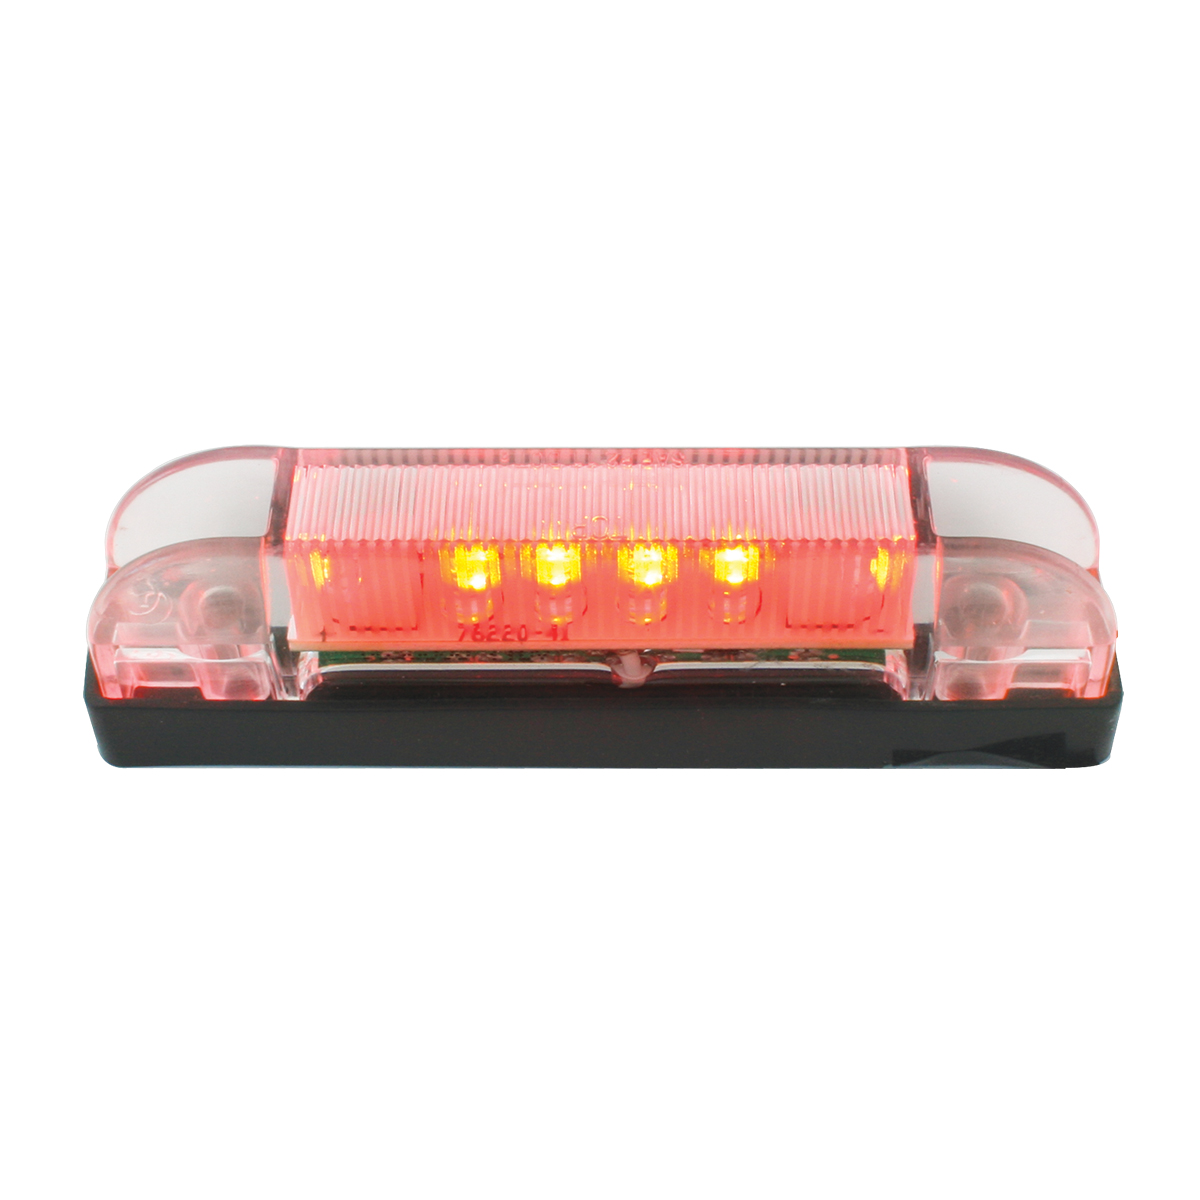 76223 Thin Line Wide Angle LED Marker Light in Red/Clear